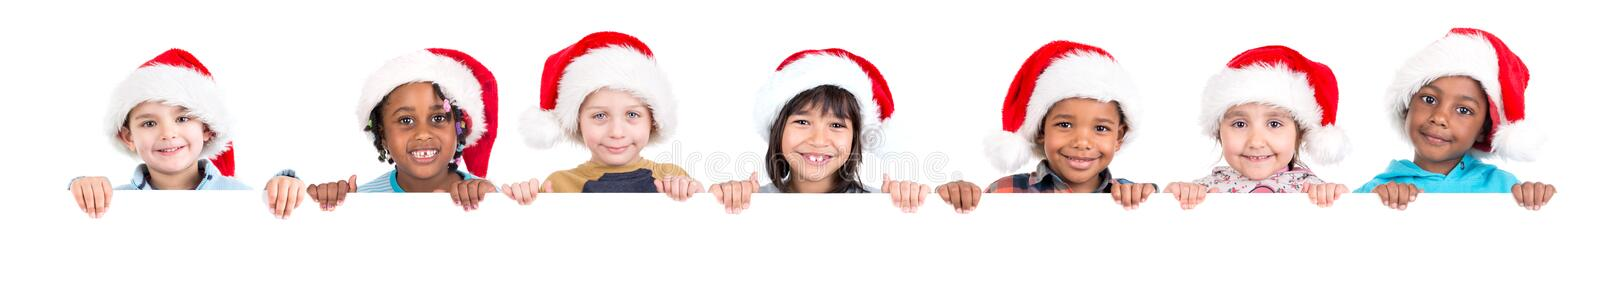 Download Children stock image. Image of merry, child, childhood - 40428537